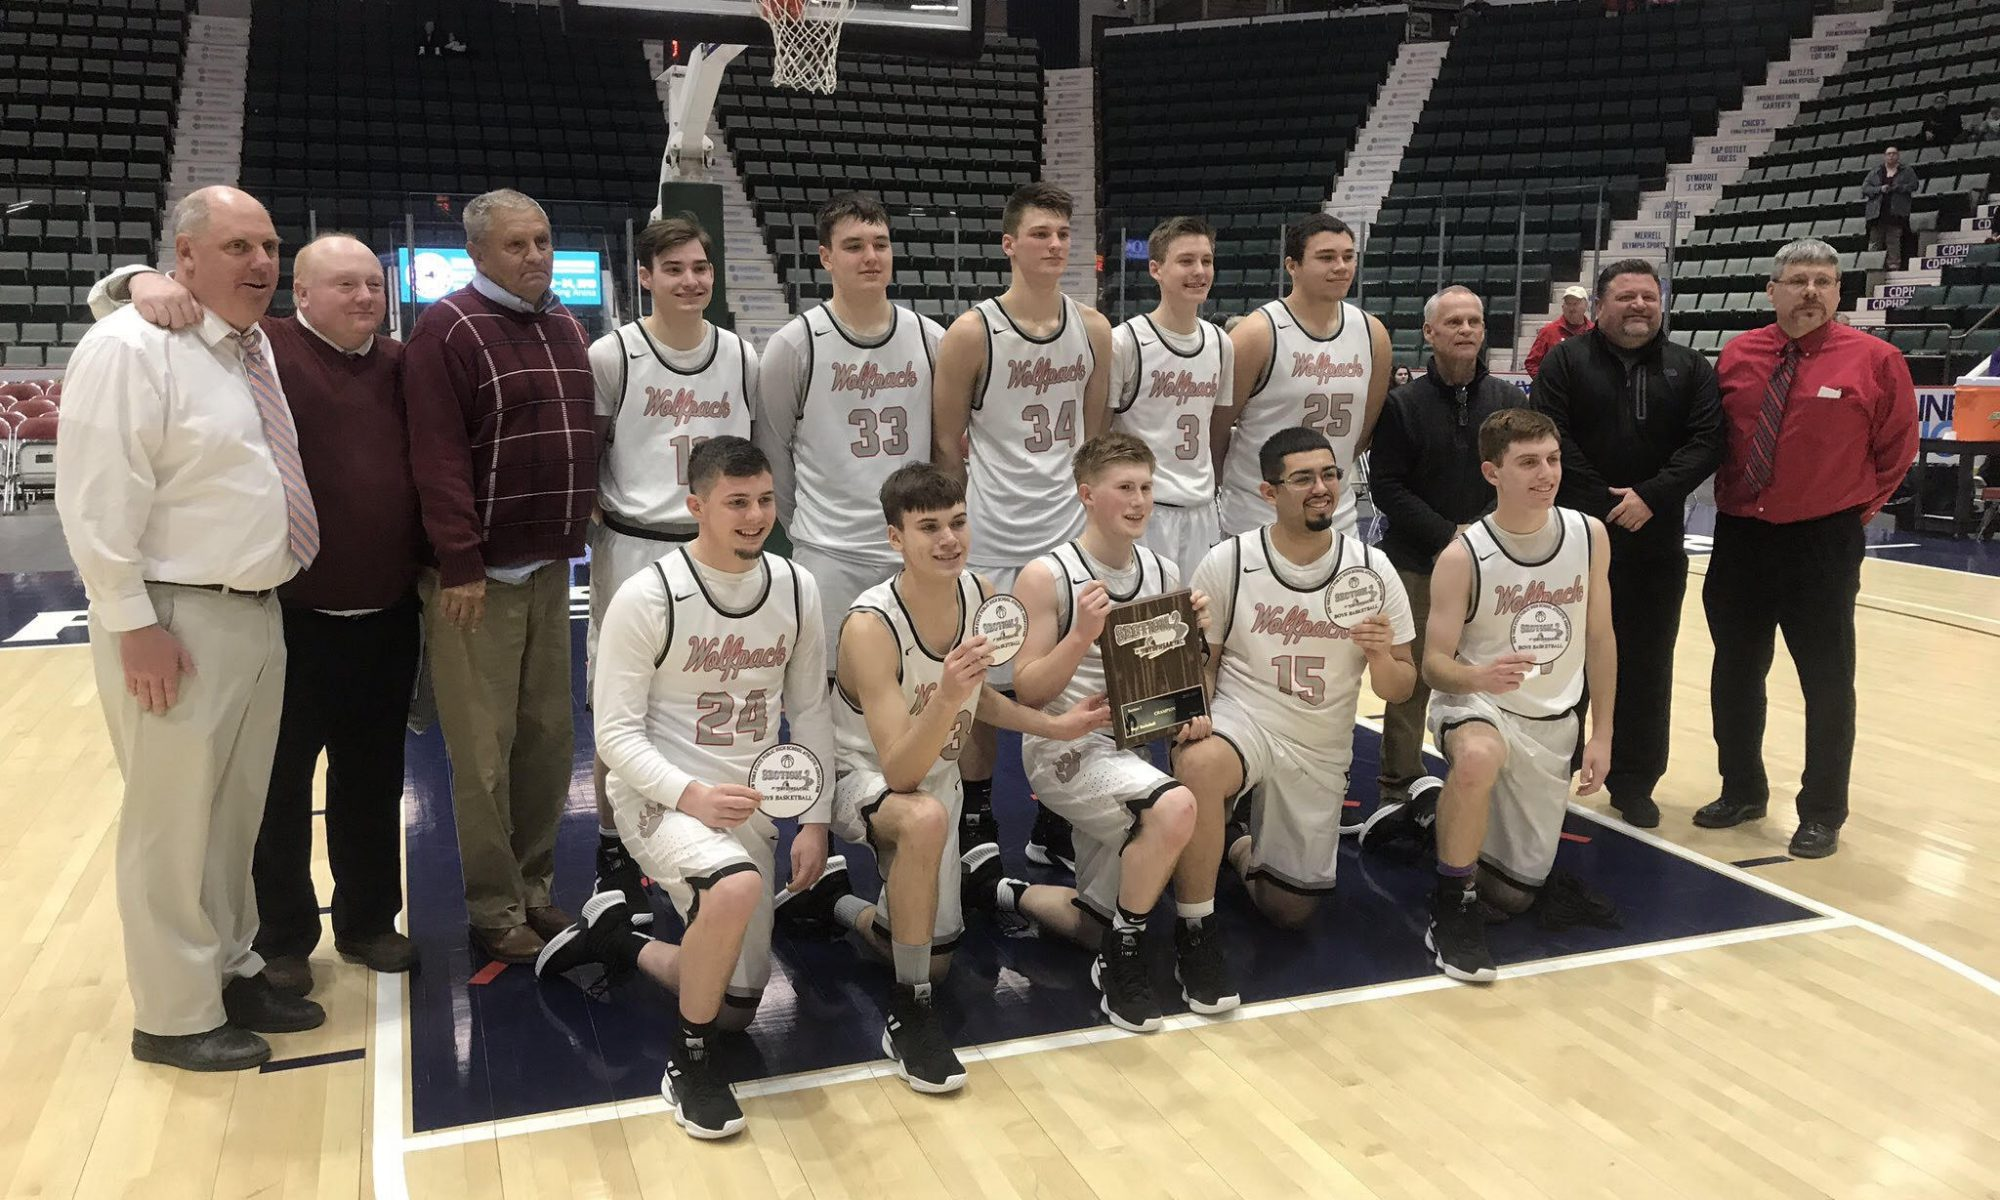 Boys Basketball team posing with Sectional Championship plaque.